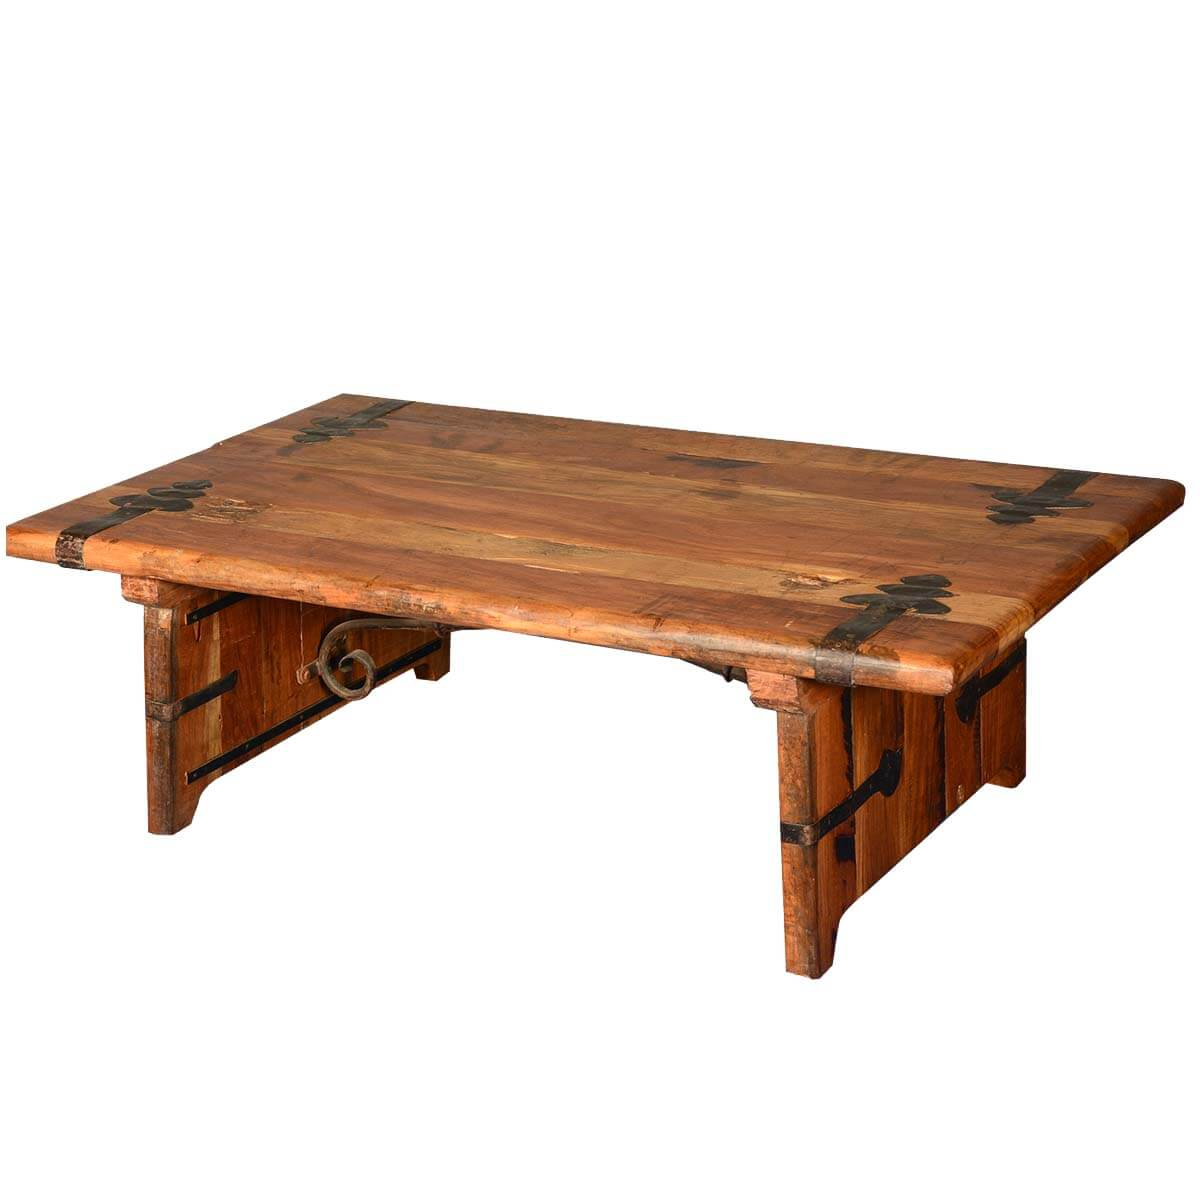 Home Rustic Reclaimed Wood Wrought Iron Hastings Coffee Table